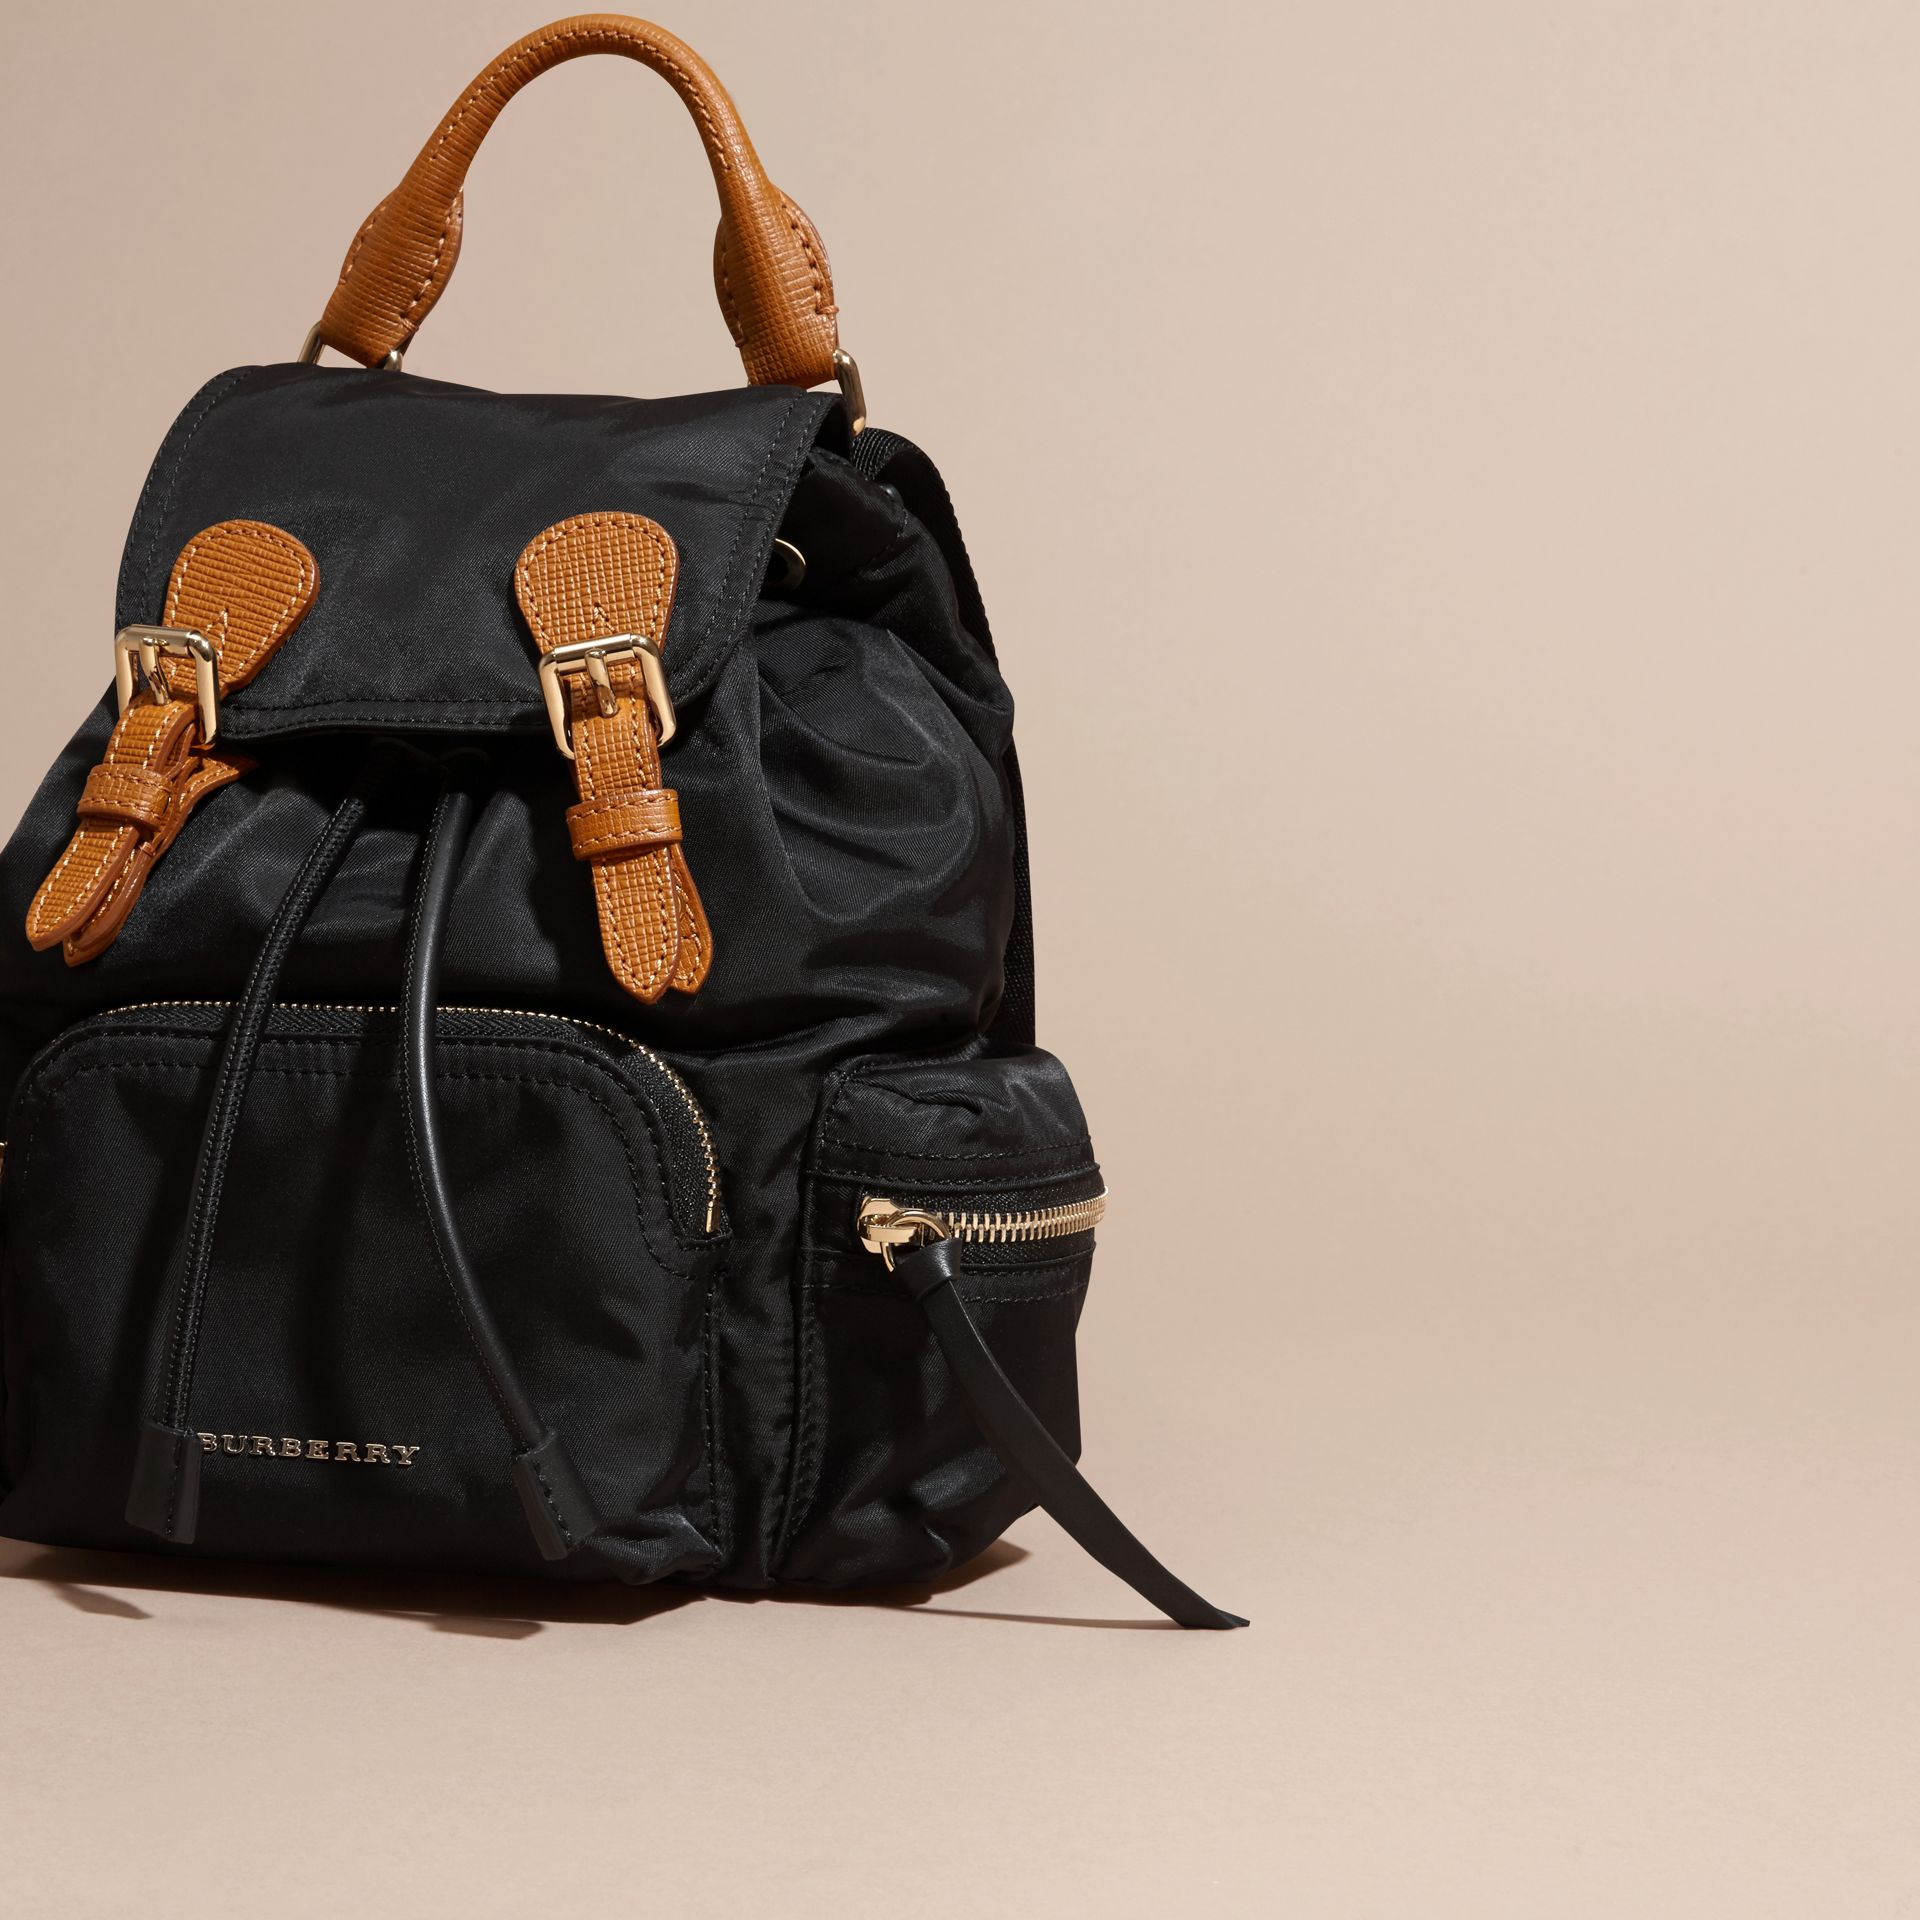 Noir Petit sac The Rucksack en nylon technique et cuir Noir - photo de la galerie 7